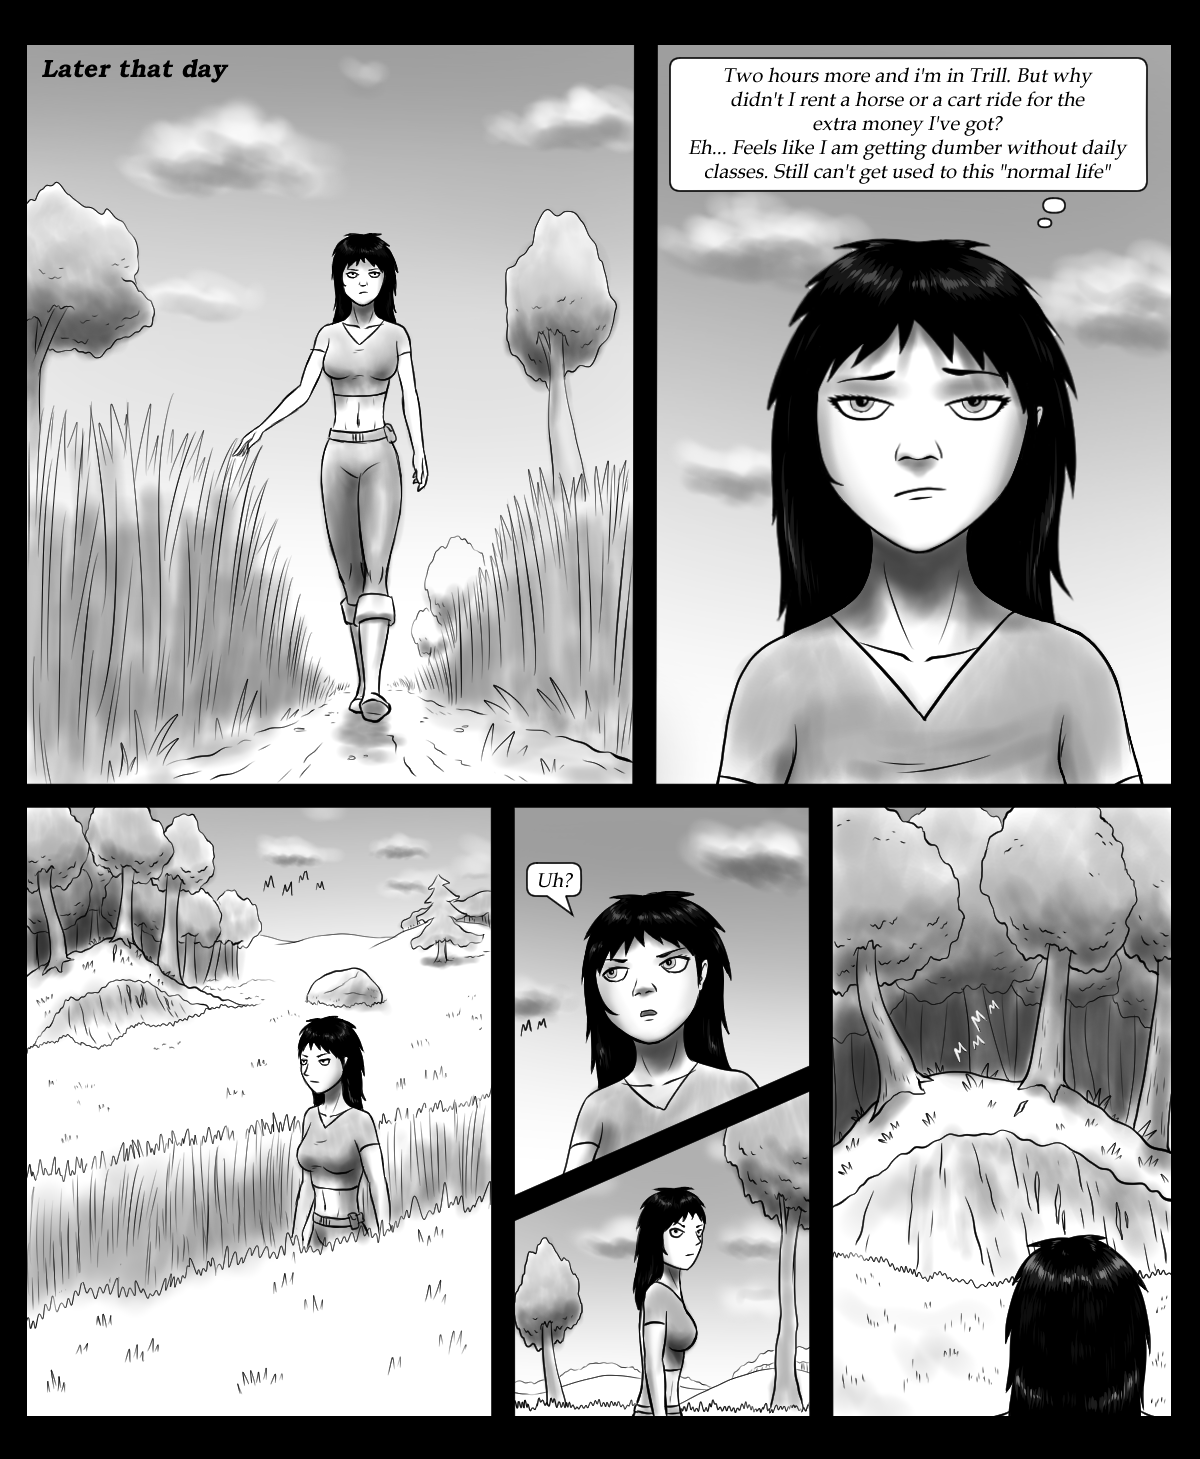 Page 17 - Nara's journey to Trill